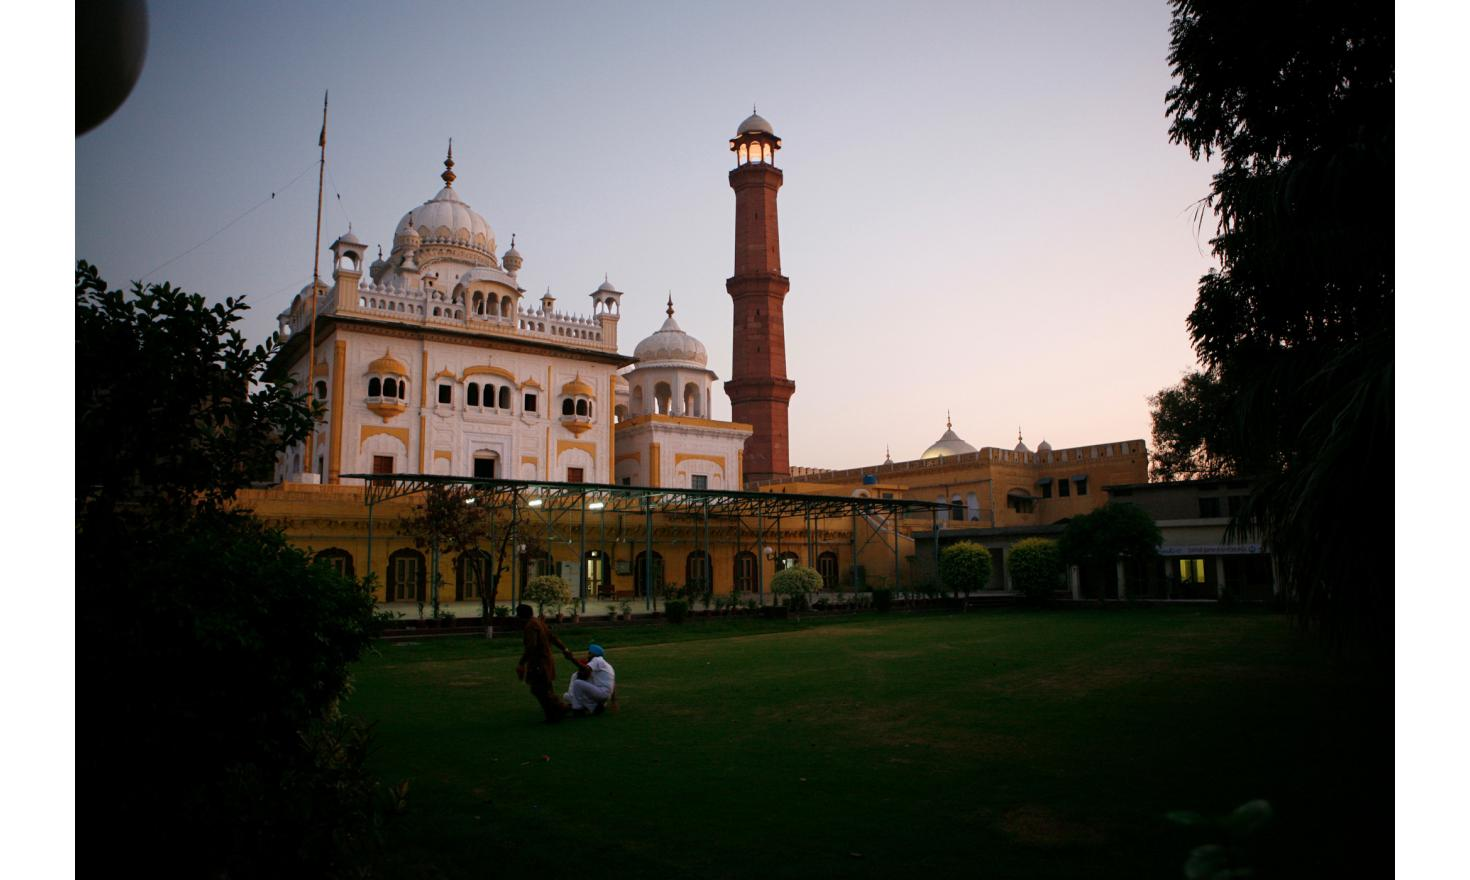 Sikh temple in Lahore. They have mostly left Pakistan during the partition. But Guru Nanak, founder of Sikhism was born in Nankana Sahib, Punjab Pakistani town, still considered a holy place and pilgrimage site.